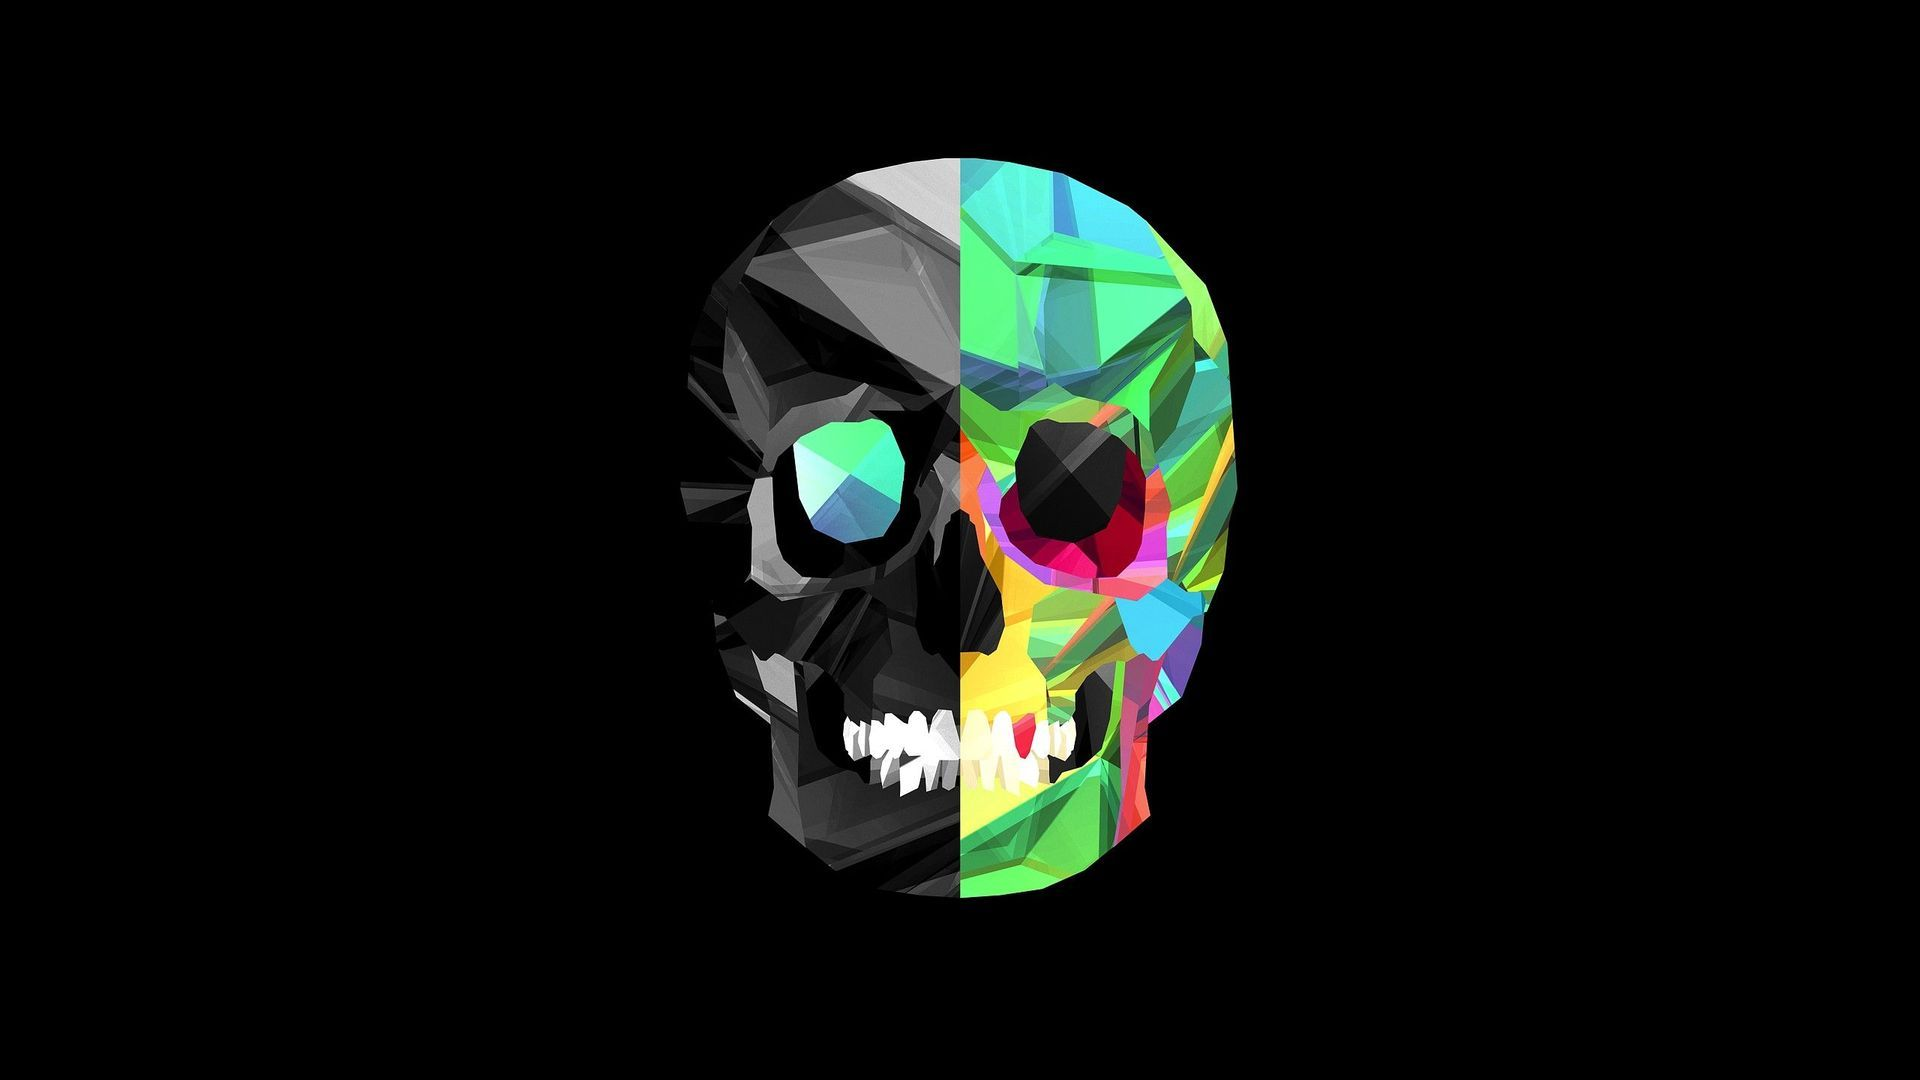 Skull Wallpapers High Quality Resolution Is Cool Wallpapers I in 1920x1080